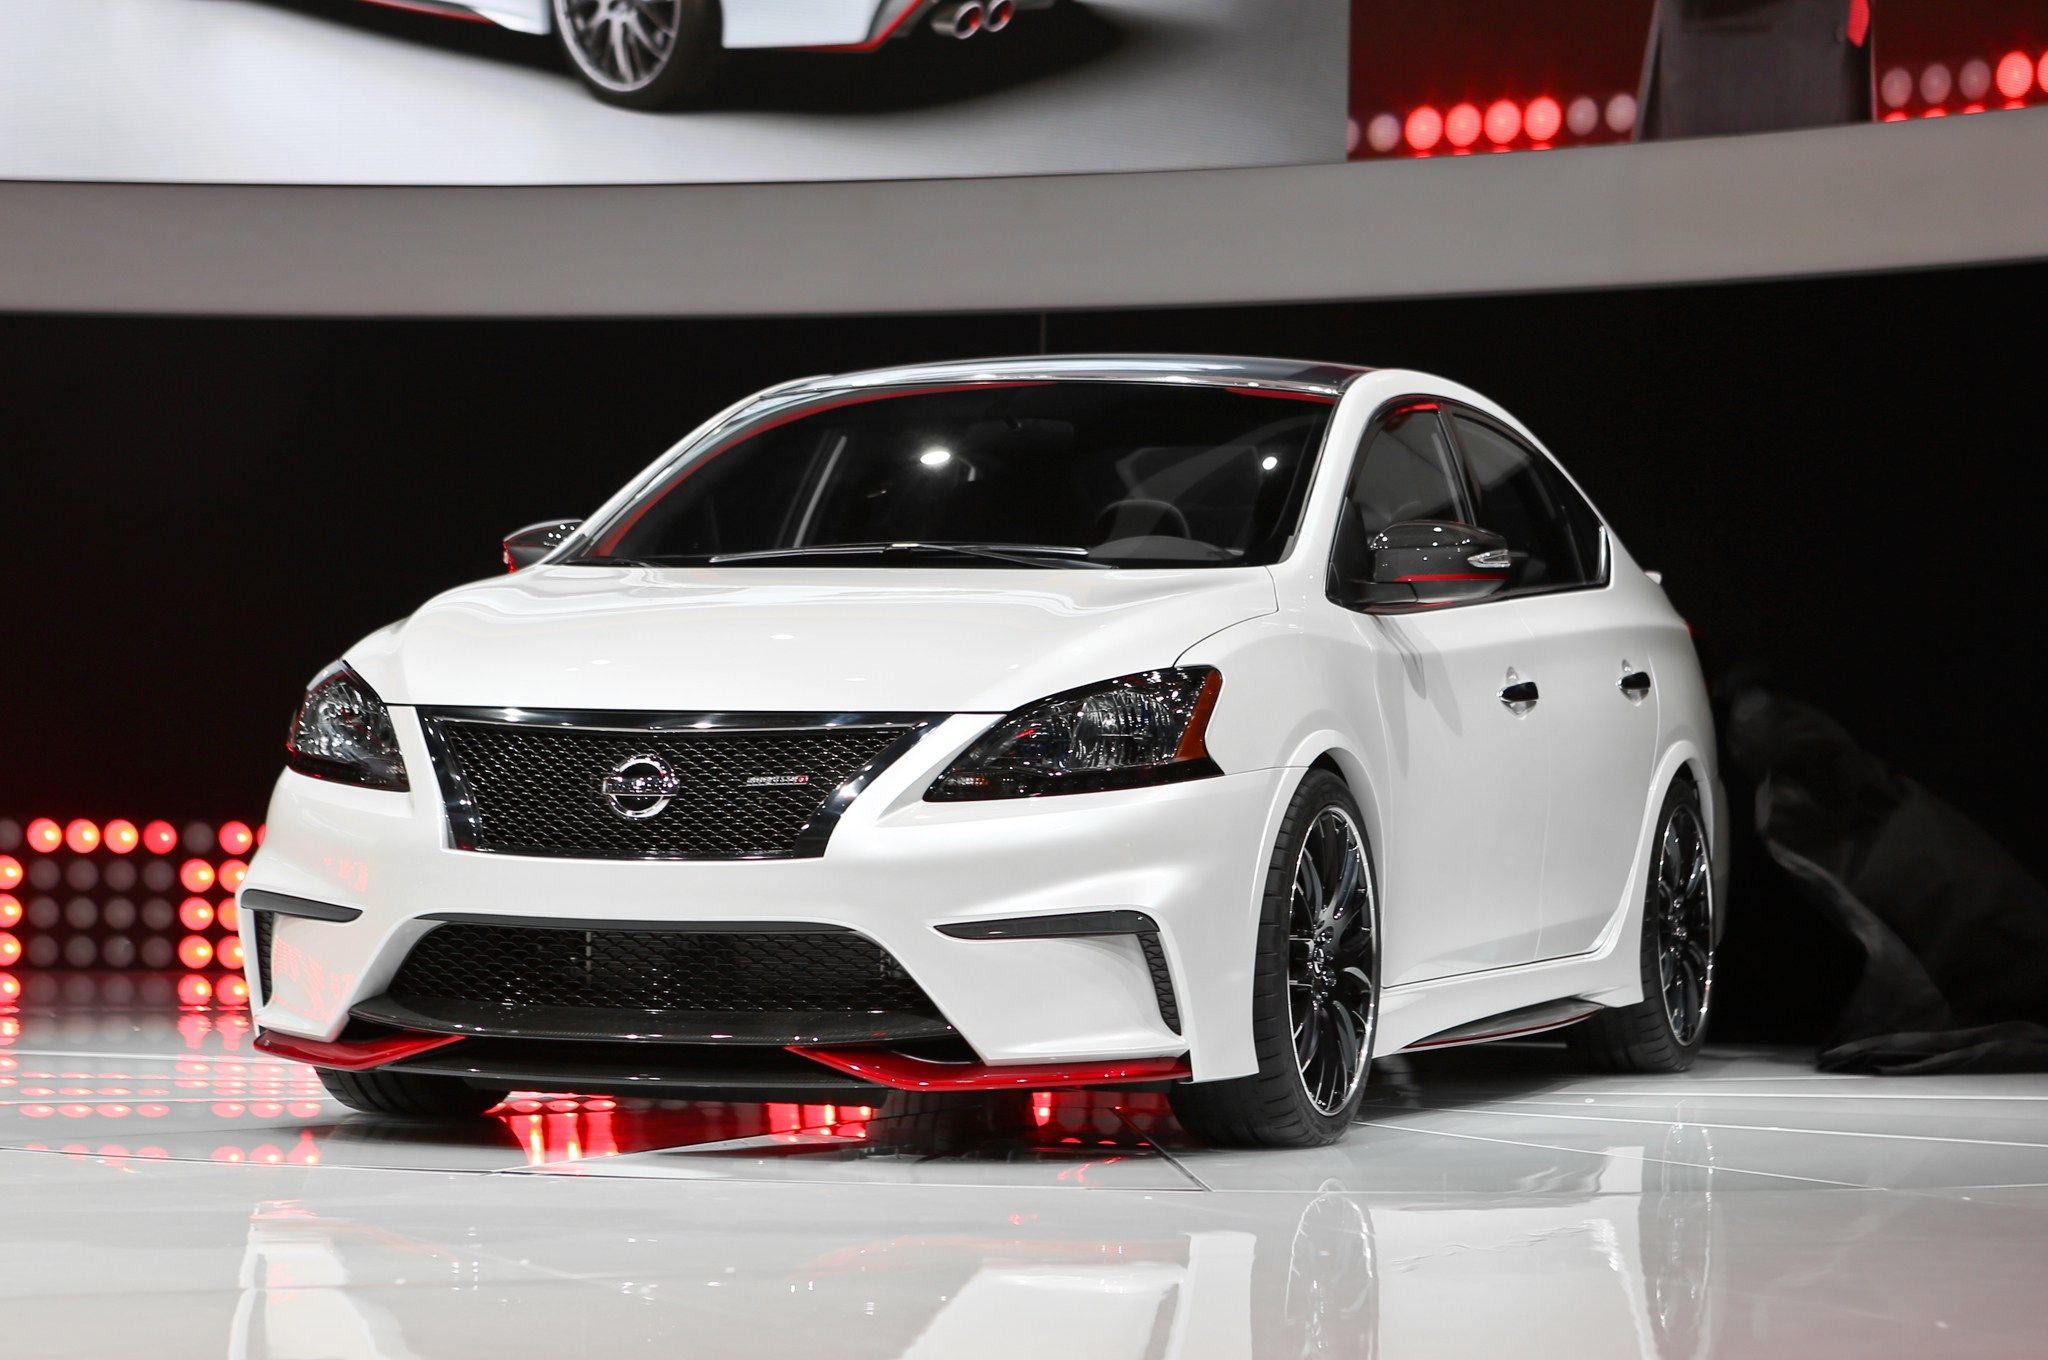 2020 Nissan Sentra Horsepower, Price and Specs Rumor - New ...